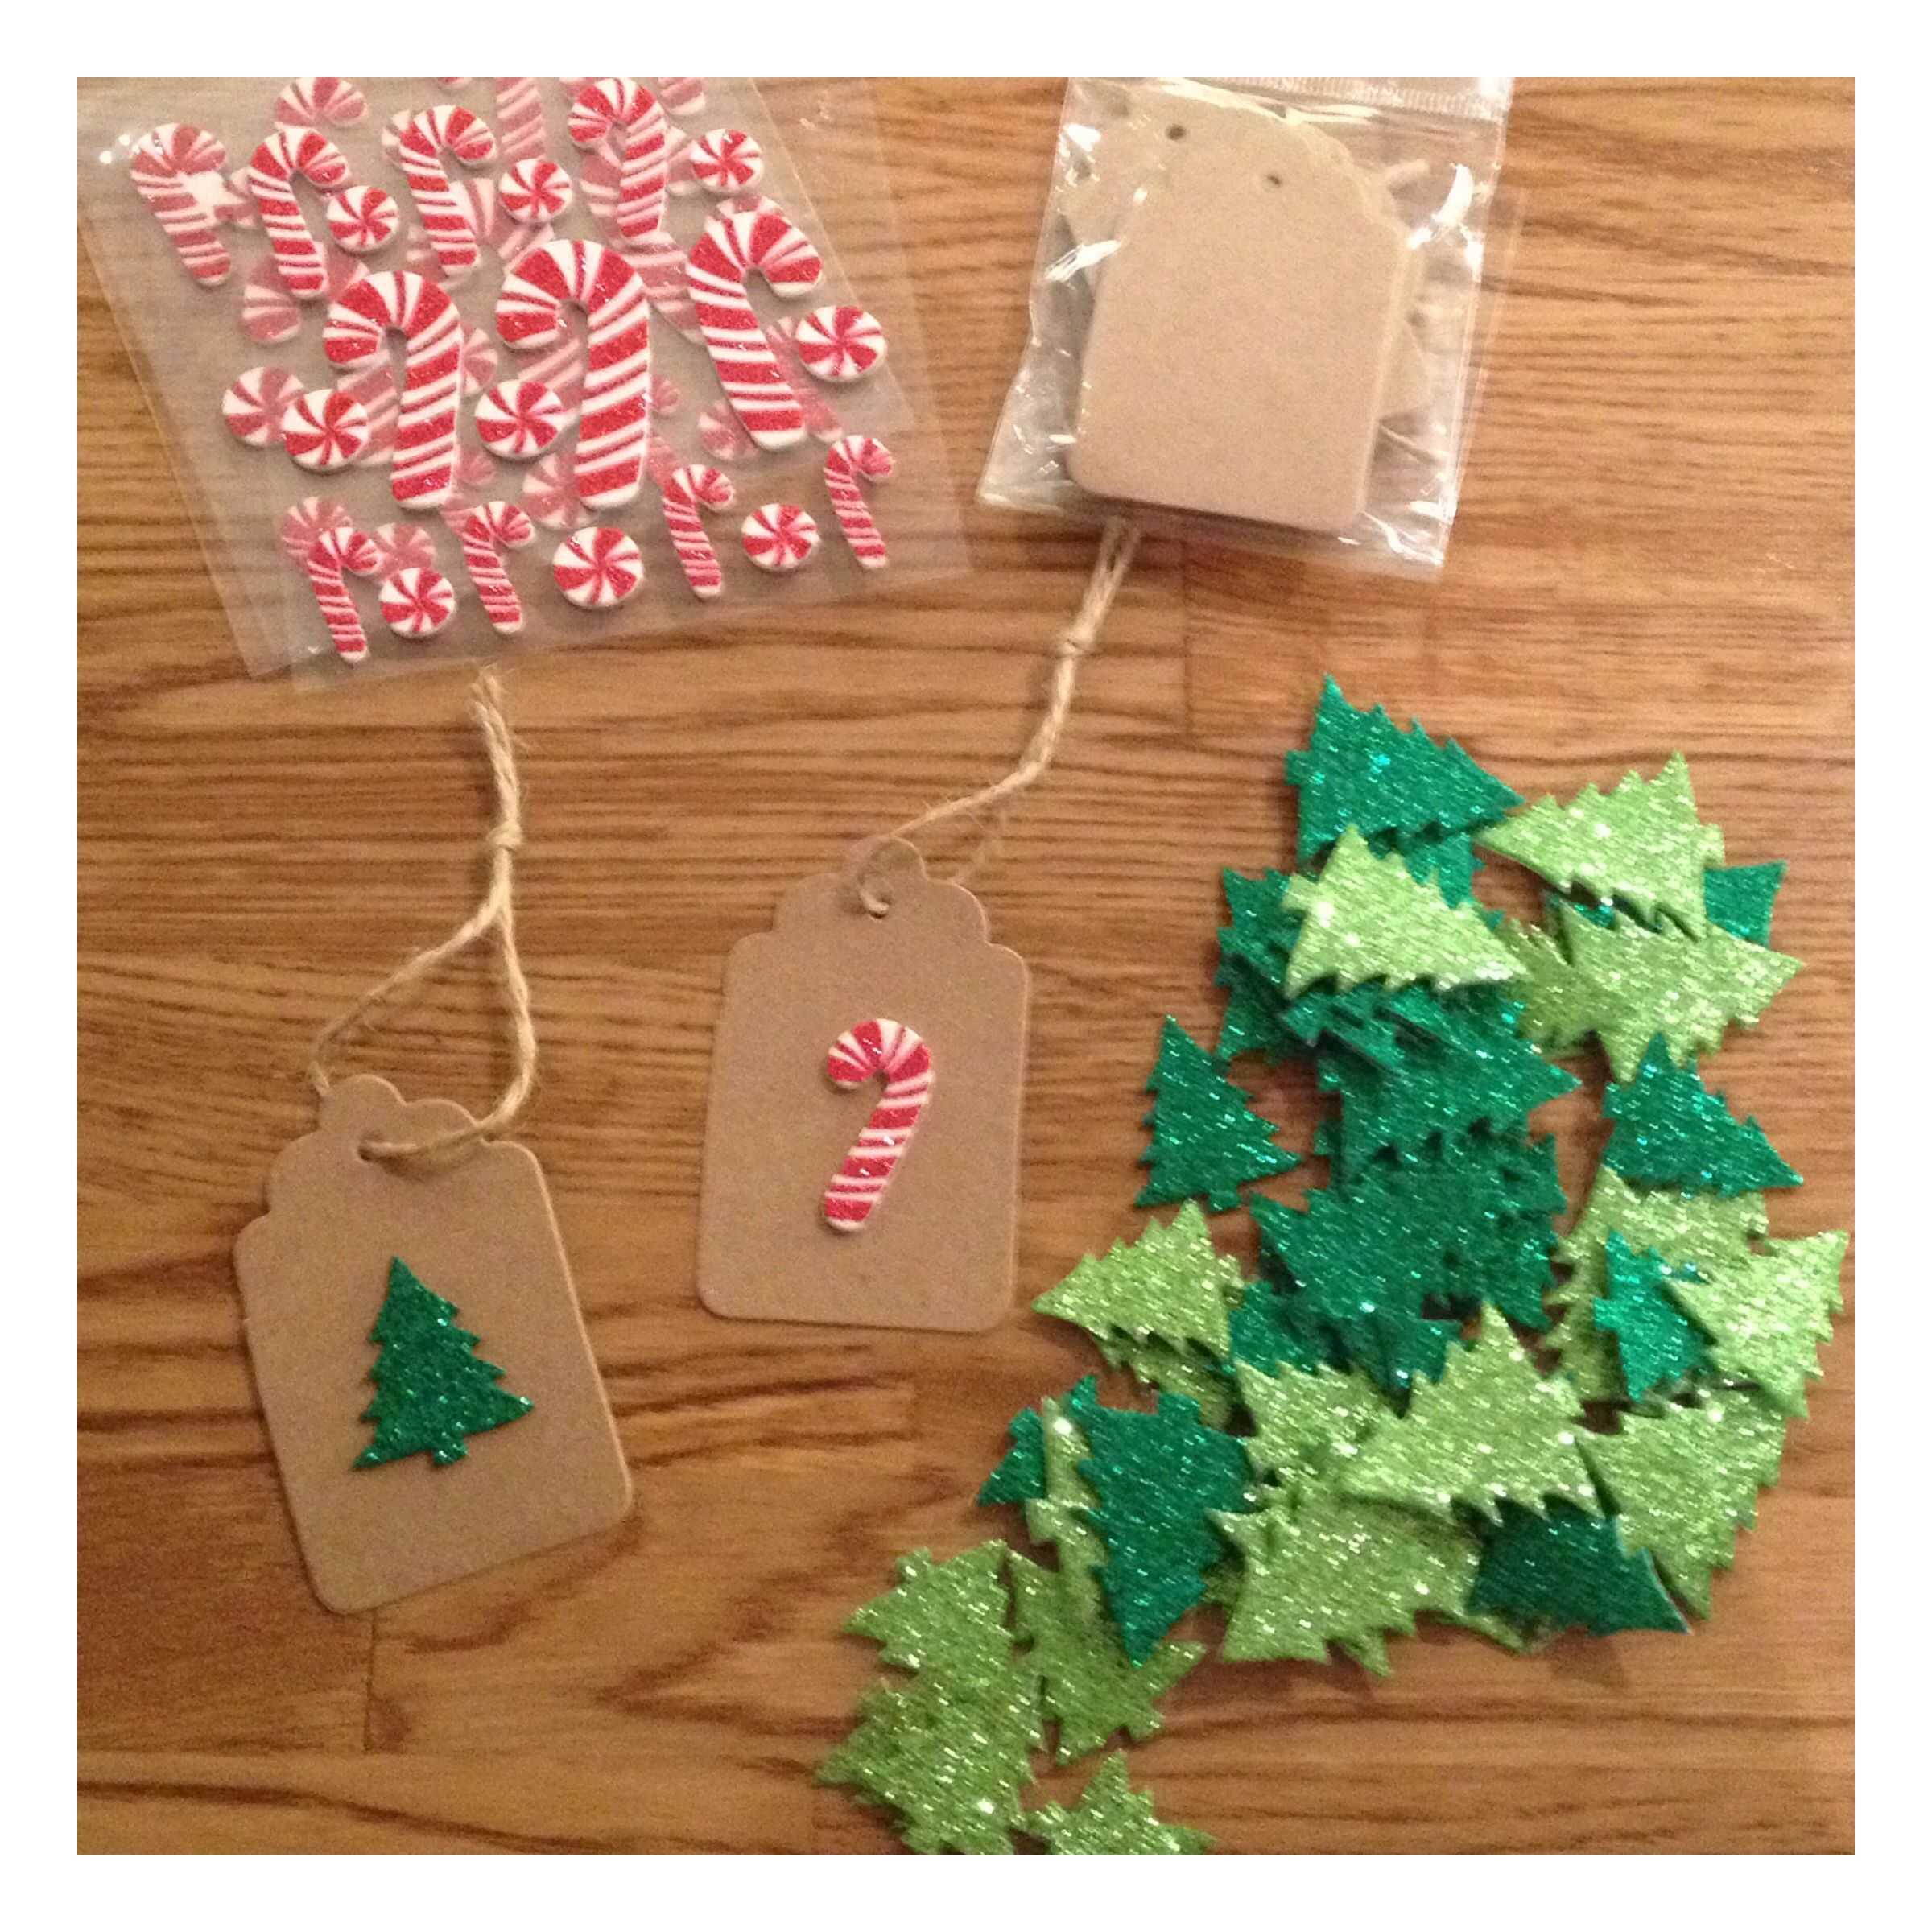 Diy Christmas Gift Tags Kraft Paper Candy Canes Christmas Trees Christmas Gift Tags Diy Diy Christmas Gifts Christmas Crafts